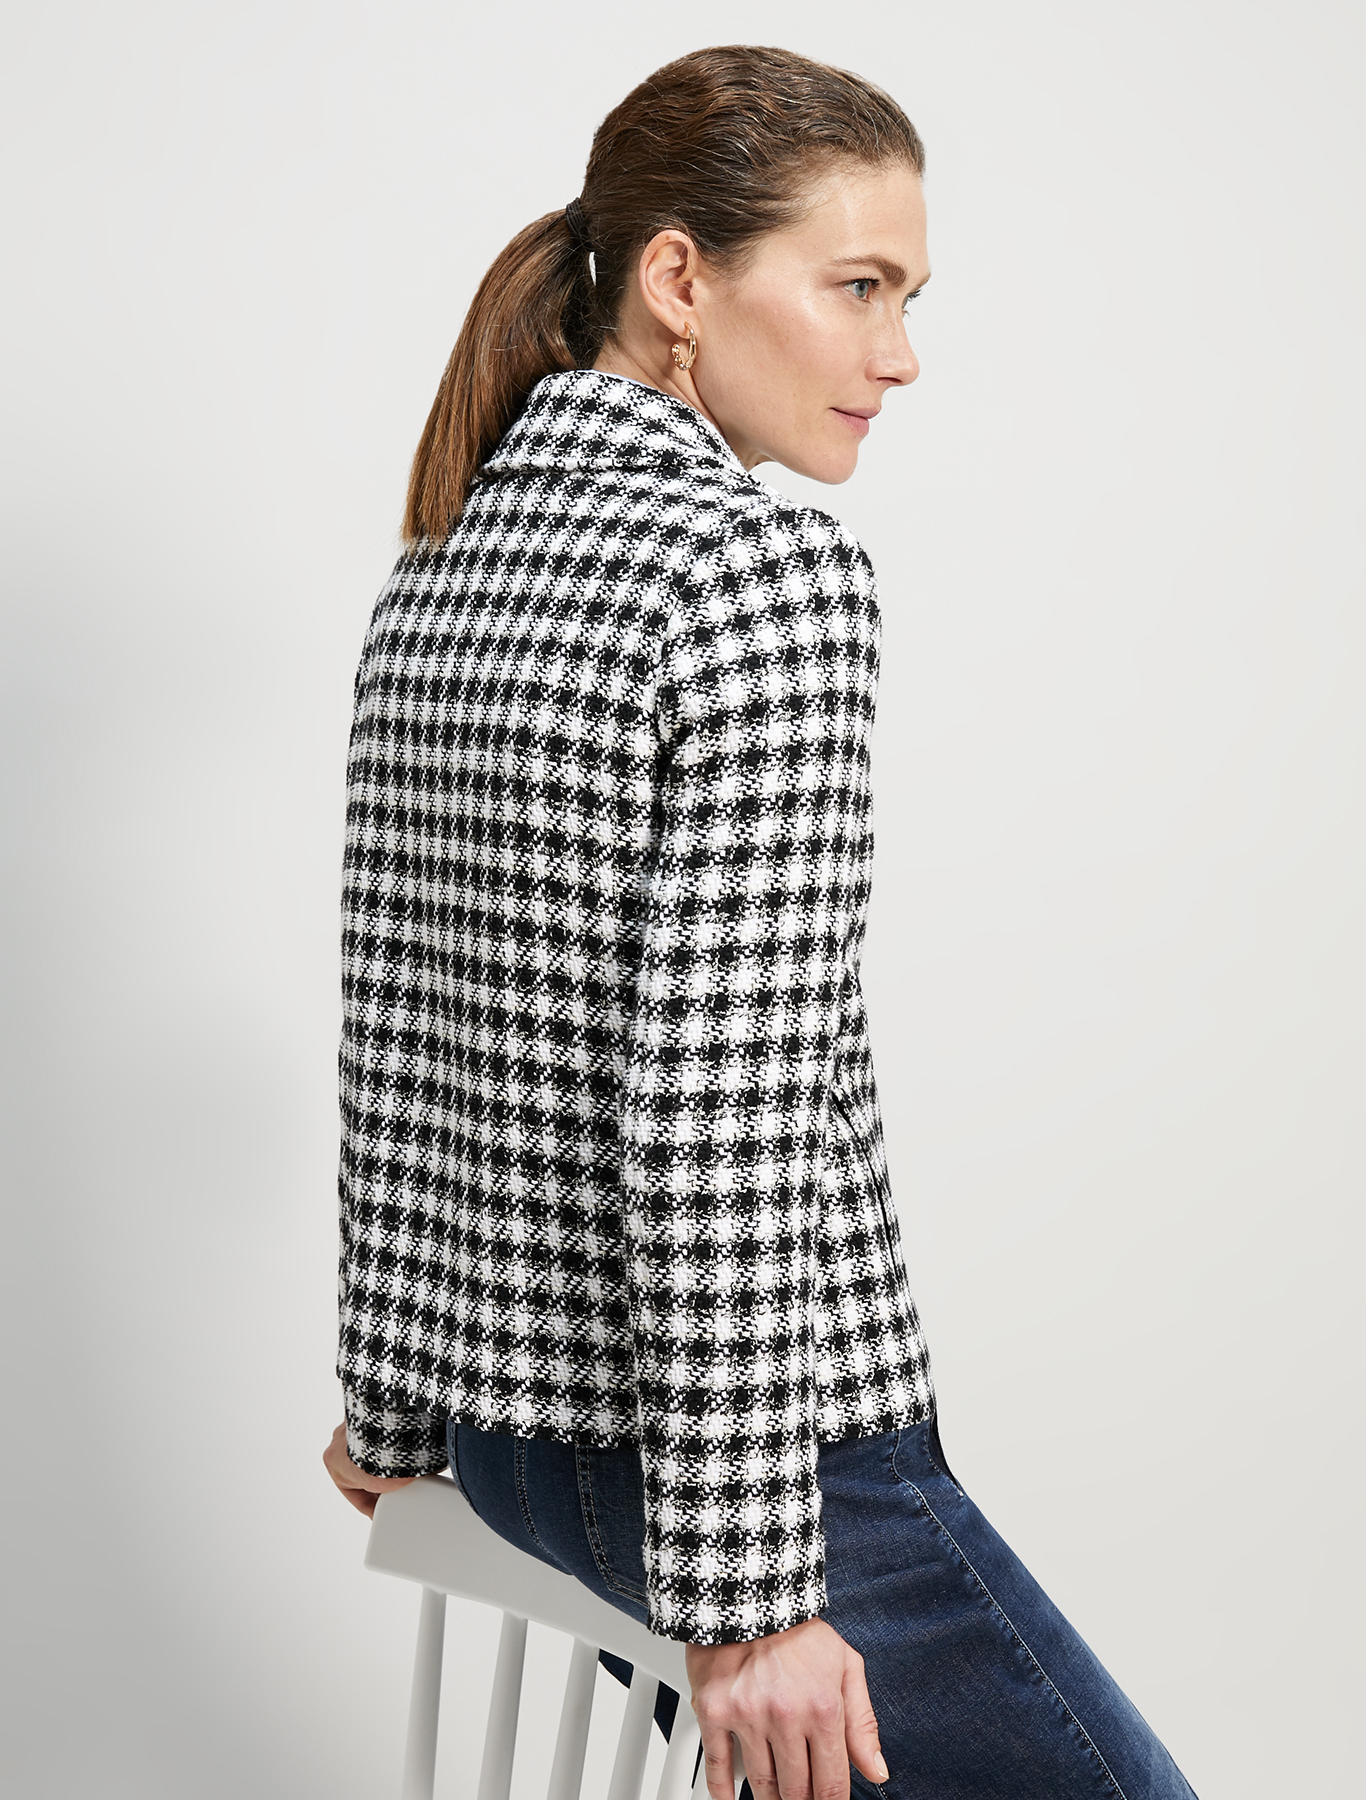 Pea coat in lamé basketweave - black pattern - pennyblack